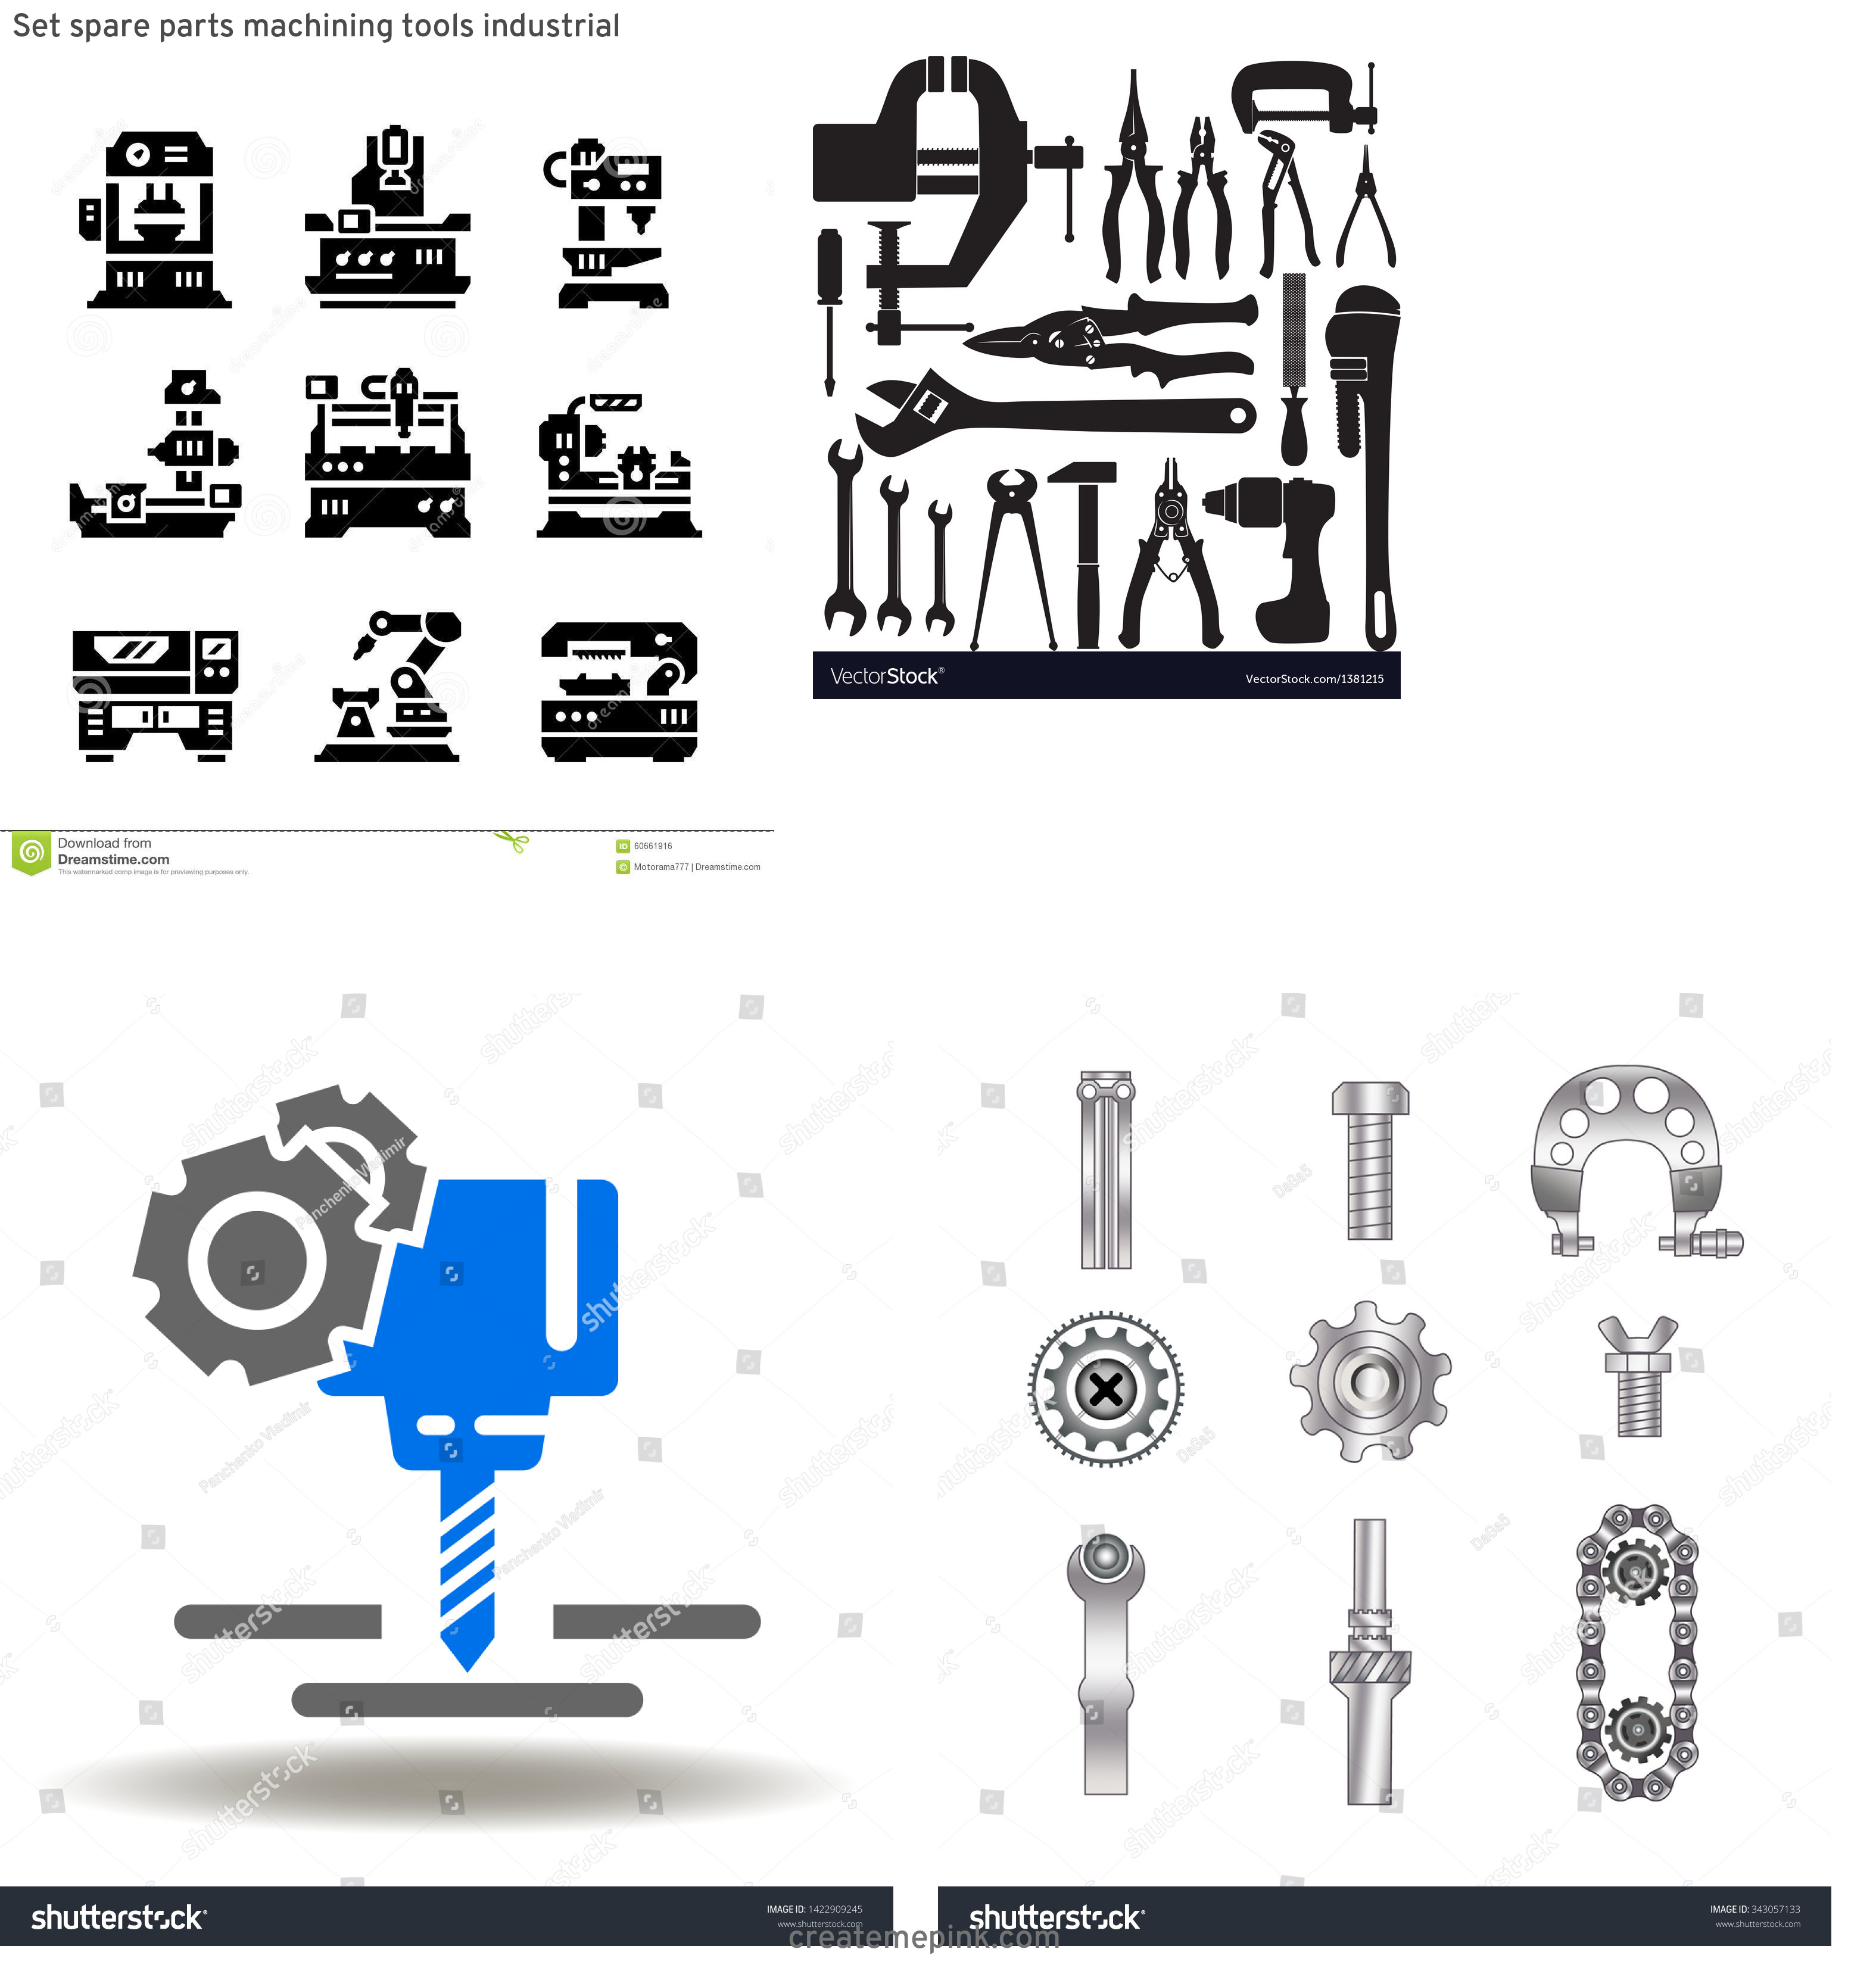 Machinist Tools Vector Logo: Set Spare Parts Machining Tools Industrial